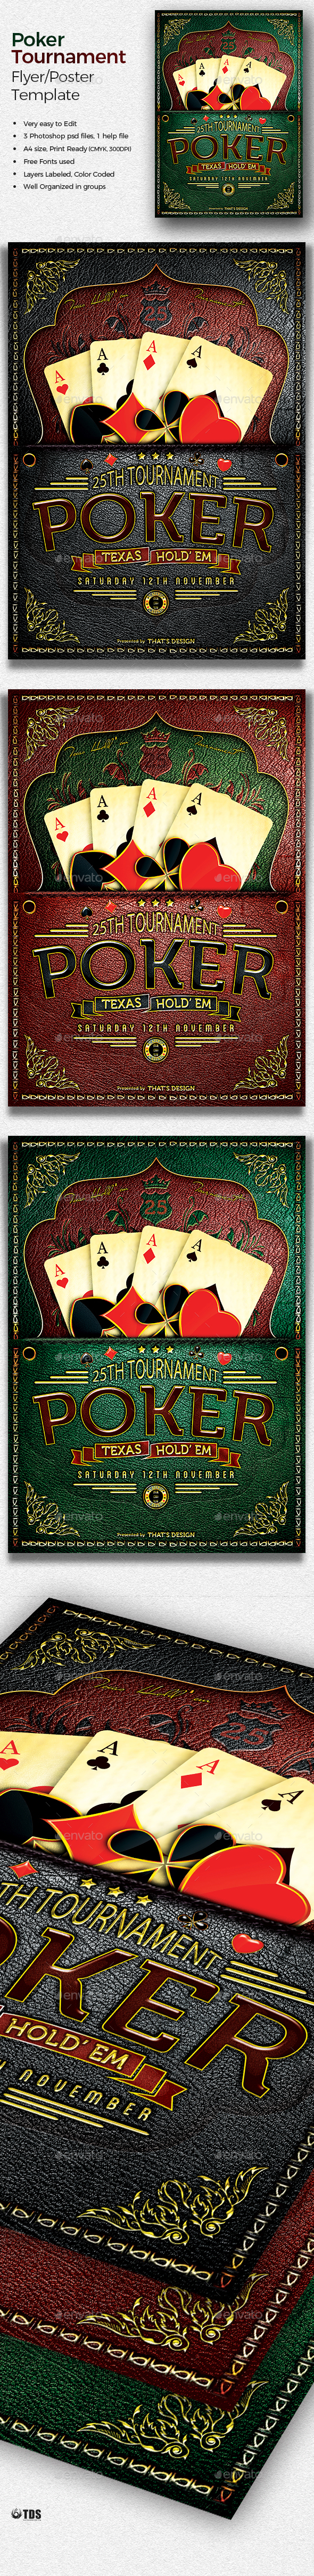 Poker Tournament Flyer Template - Events Flyers